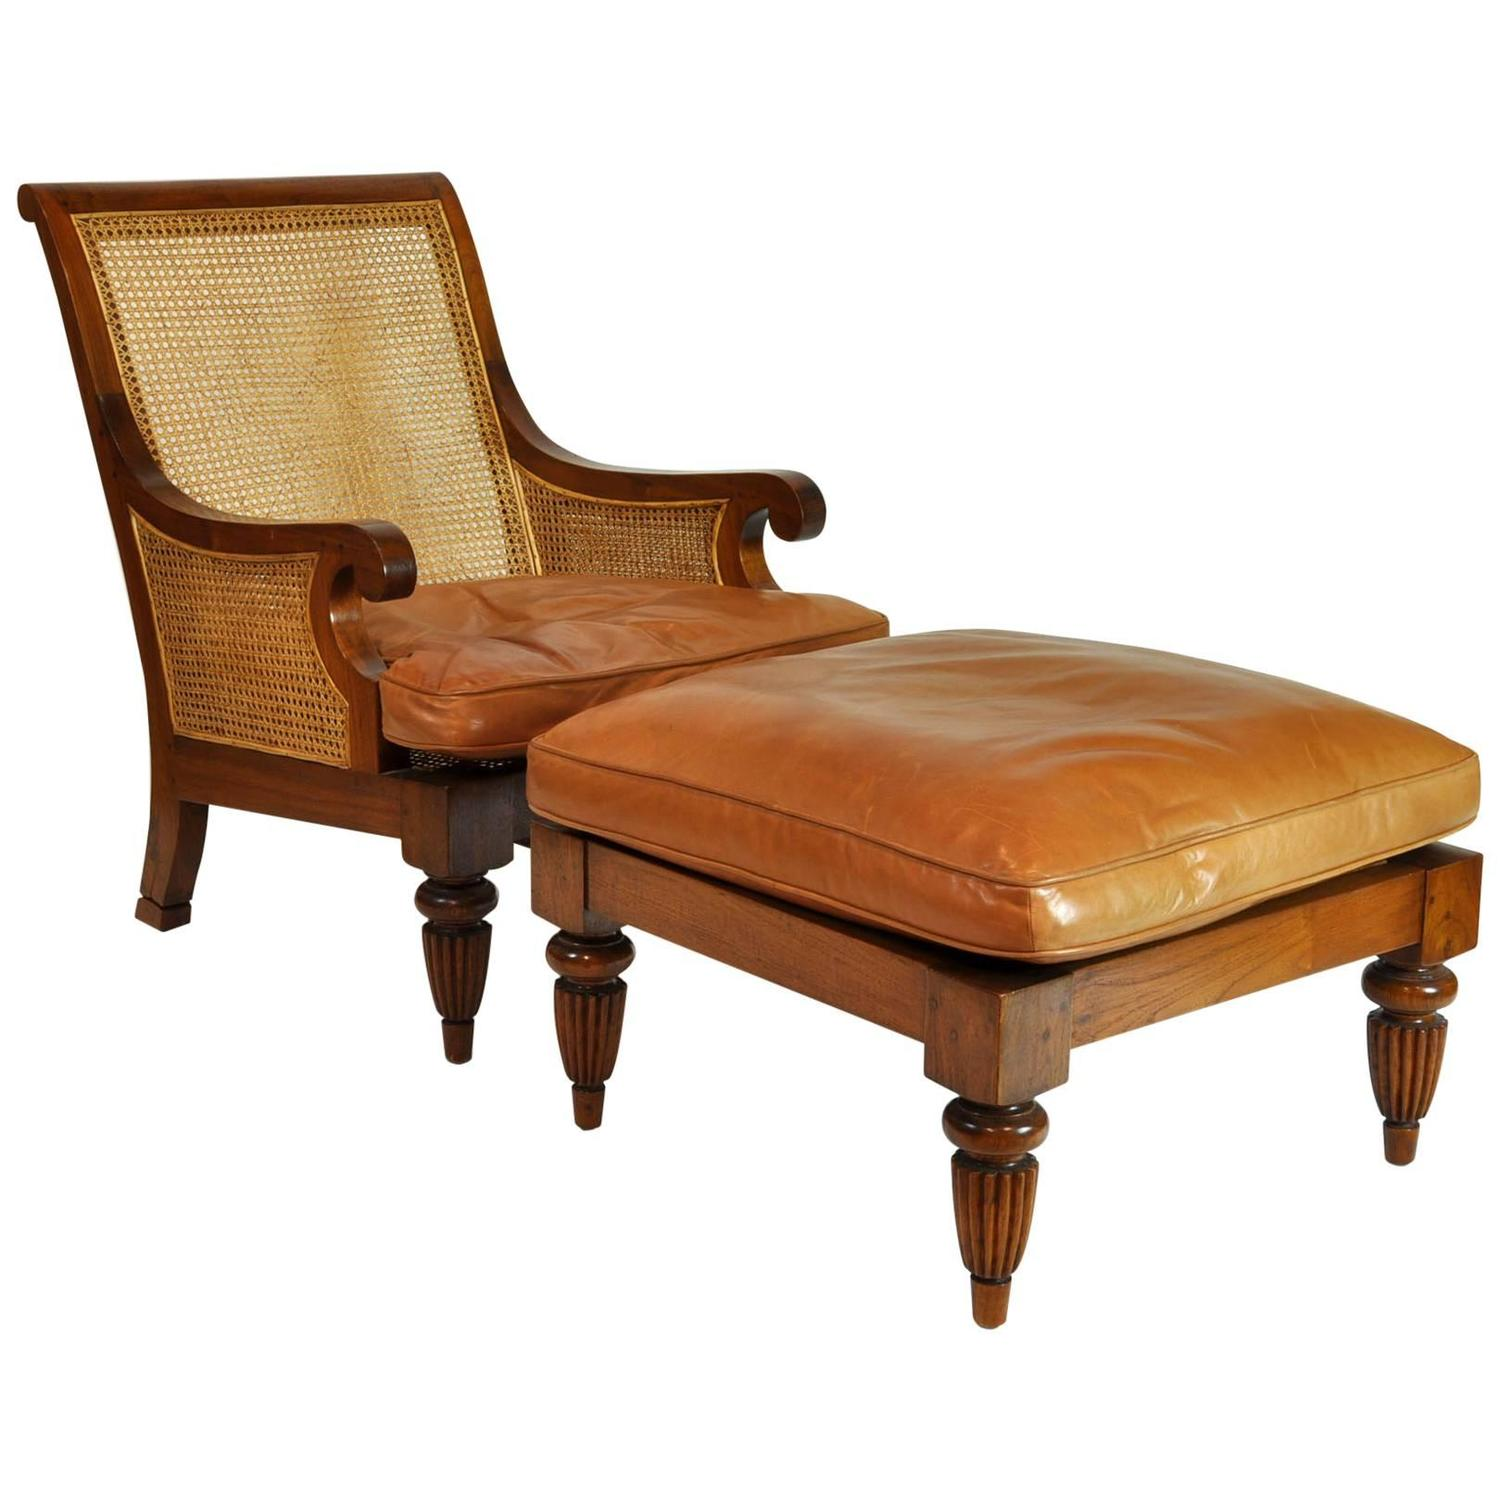 British Colonial Imports Caned Leather Plantation Style Lounge Chair And Ottoman At 1stdibs